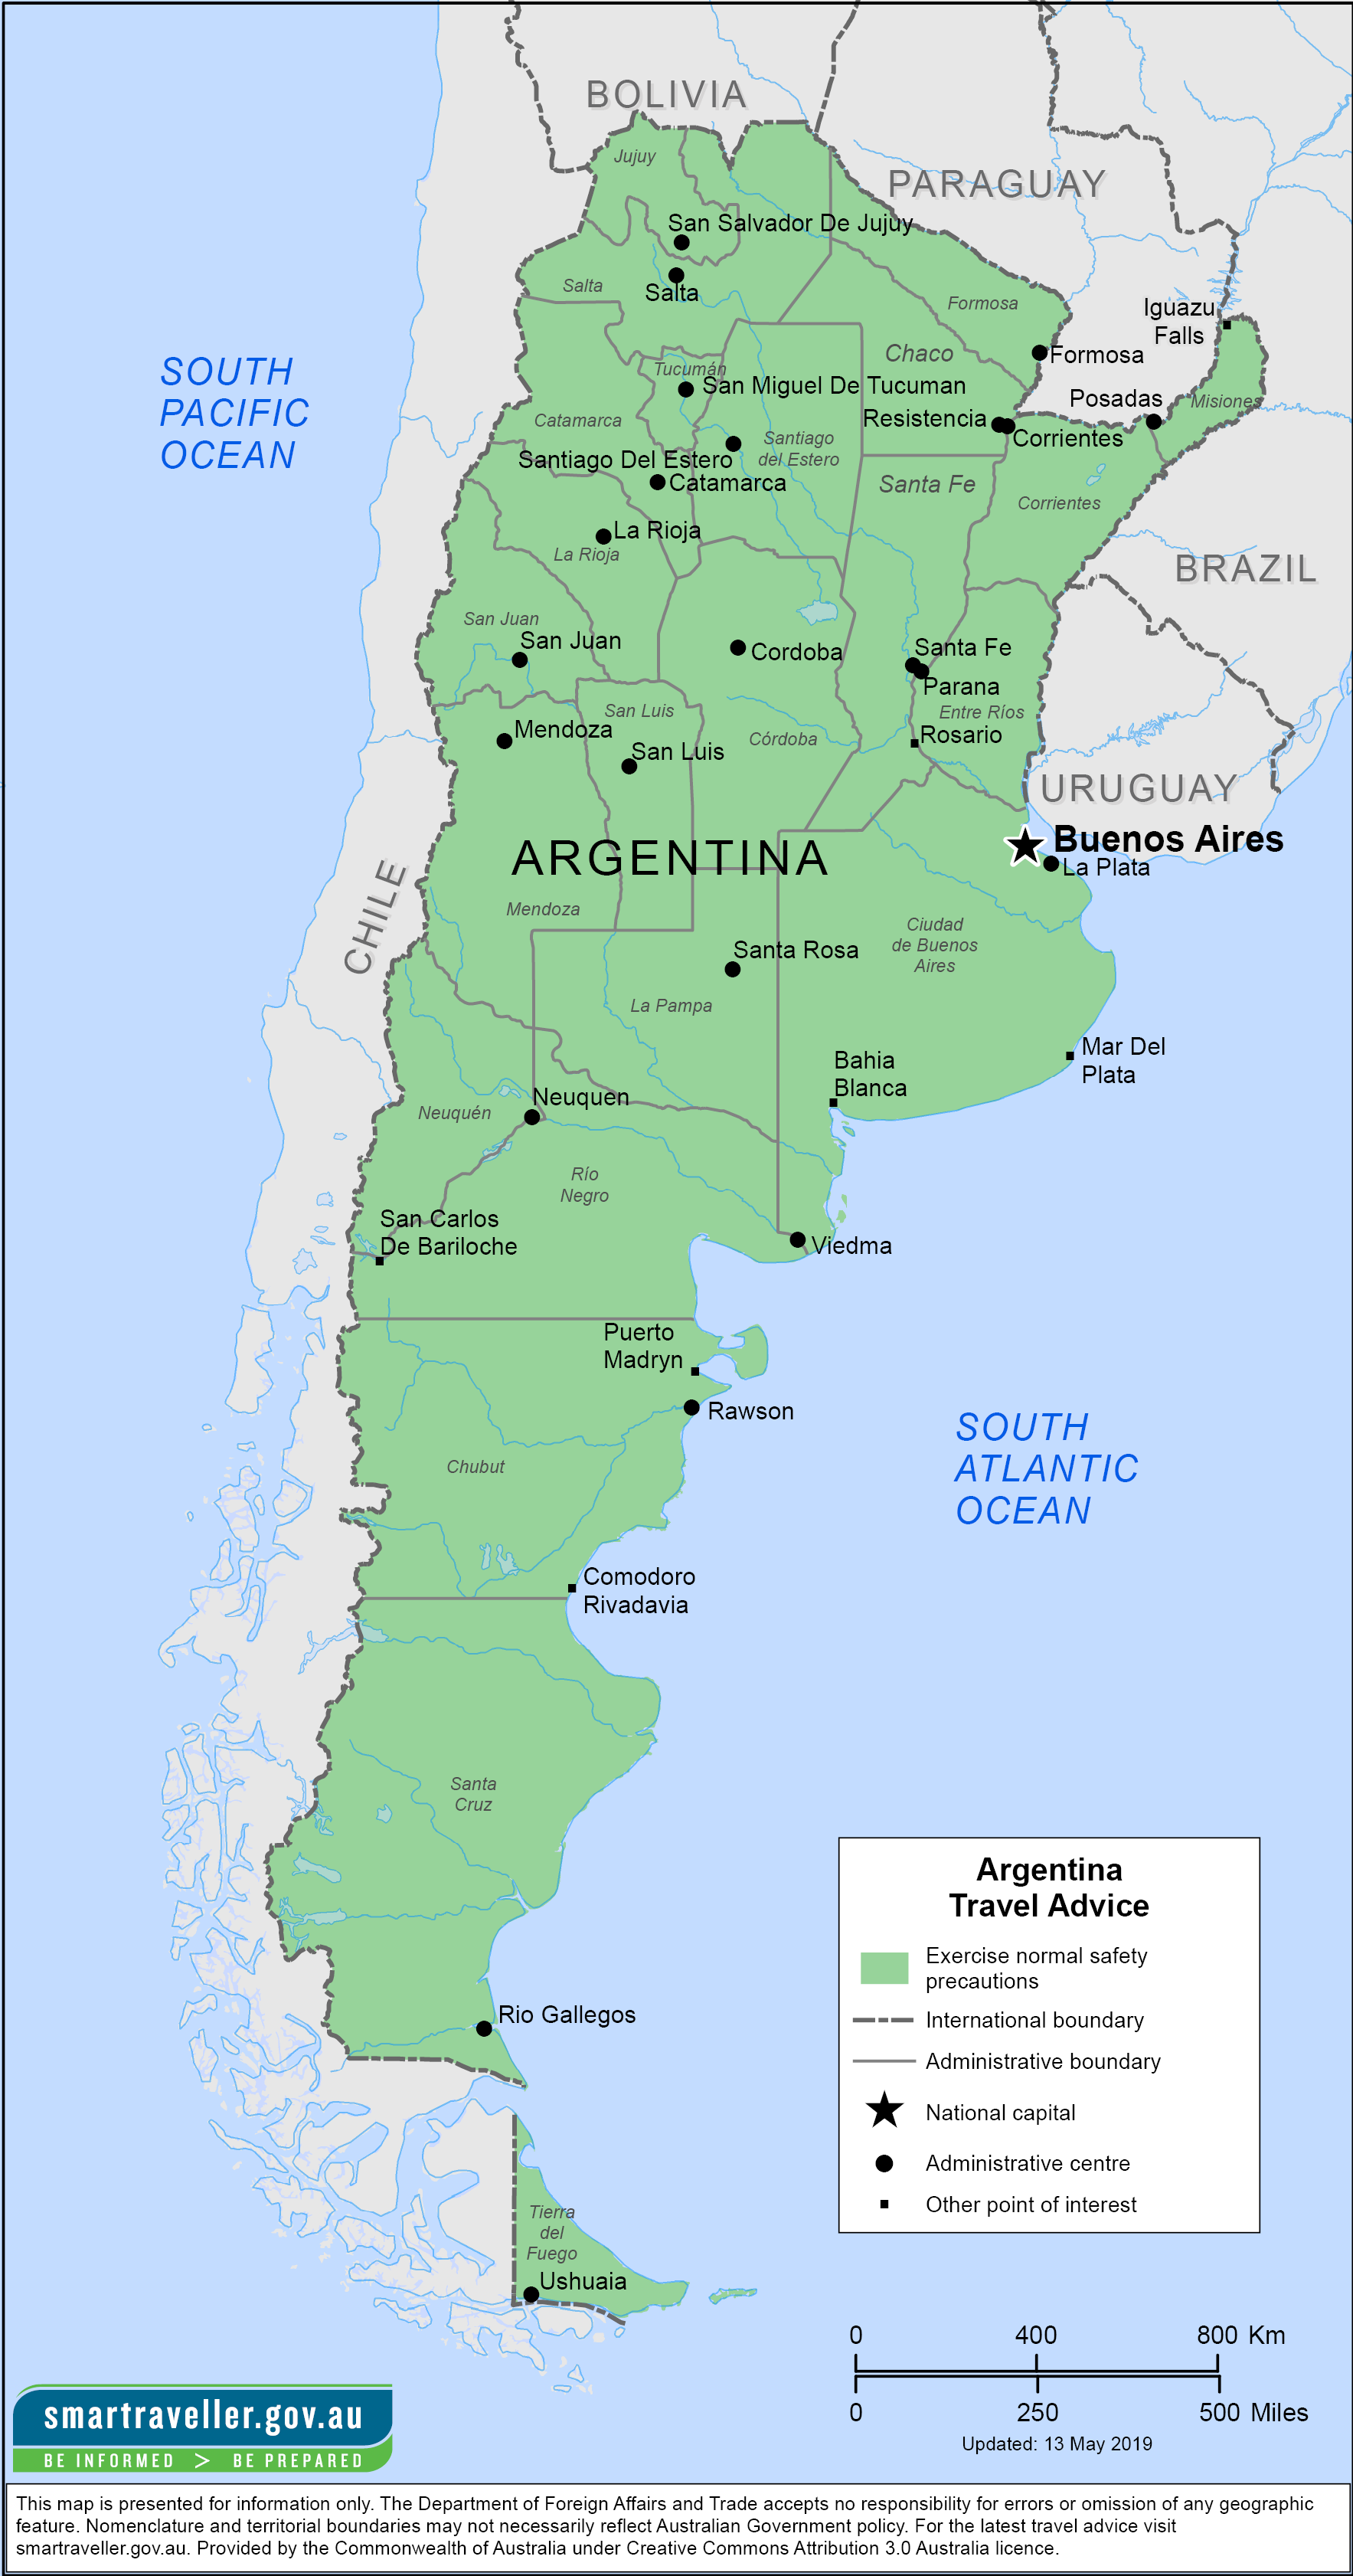 Argentina-Travel-Health-Insurance